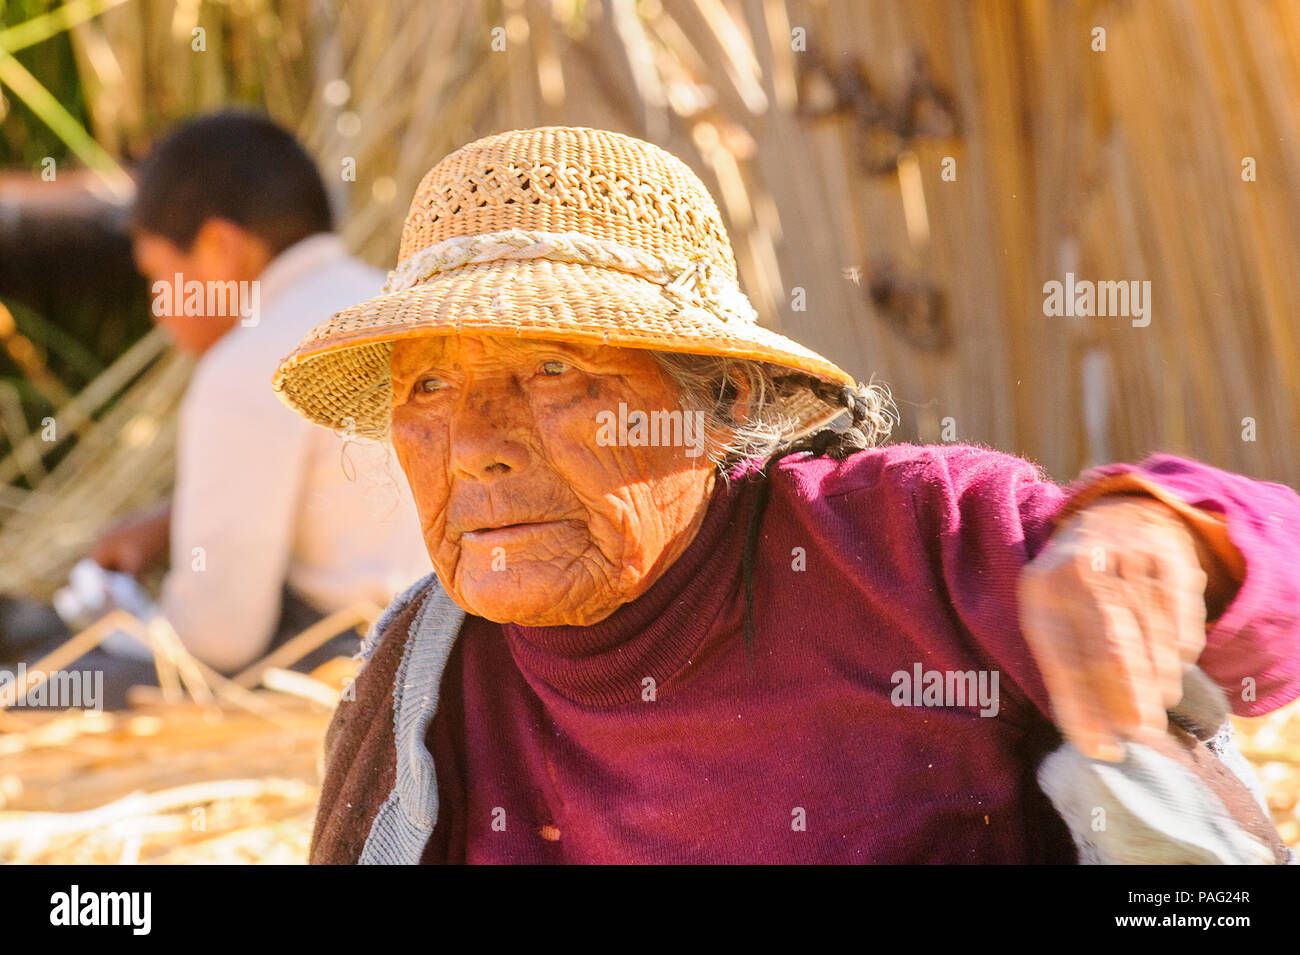 PUNO, PERU - NOVEMBER 7, 2010: Unidentified Uros woman in traditional clothes on the  Uros Islands, Peru, Nov 7, 2010. Uros Islands iclude 42 floating - Stock Image